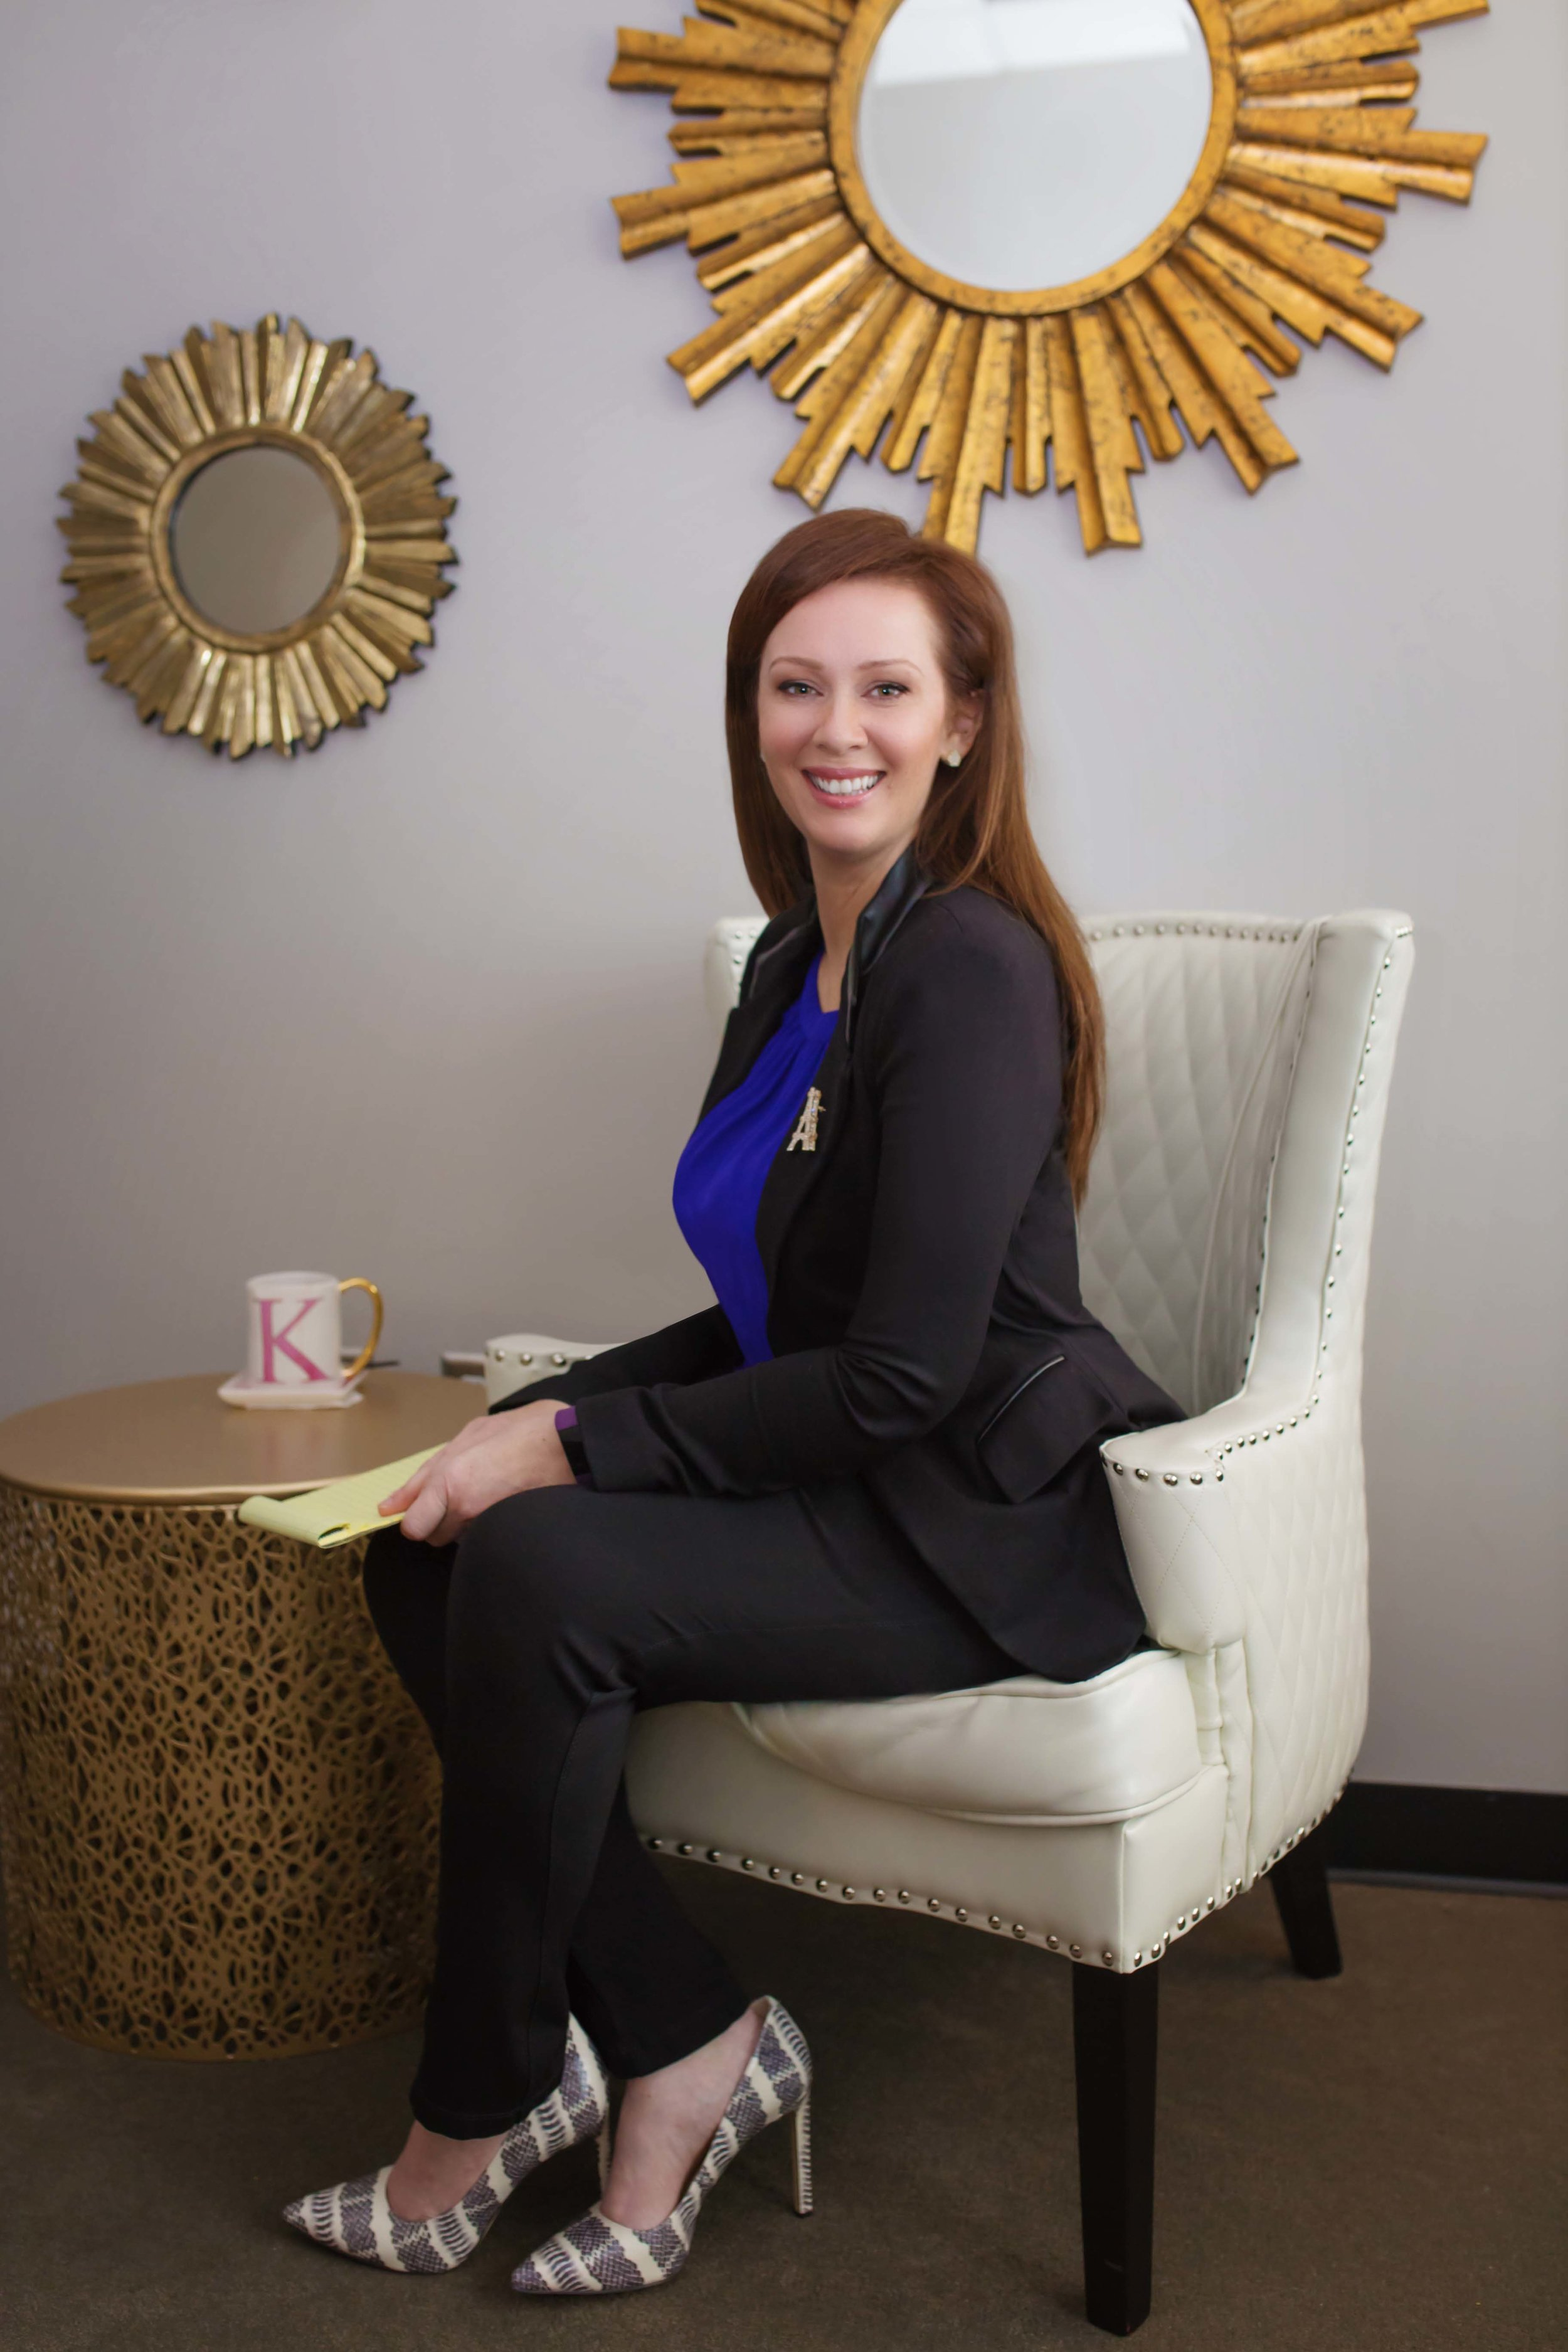 Kim Kertsburg, LCSW provides counseling and support to women and families